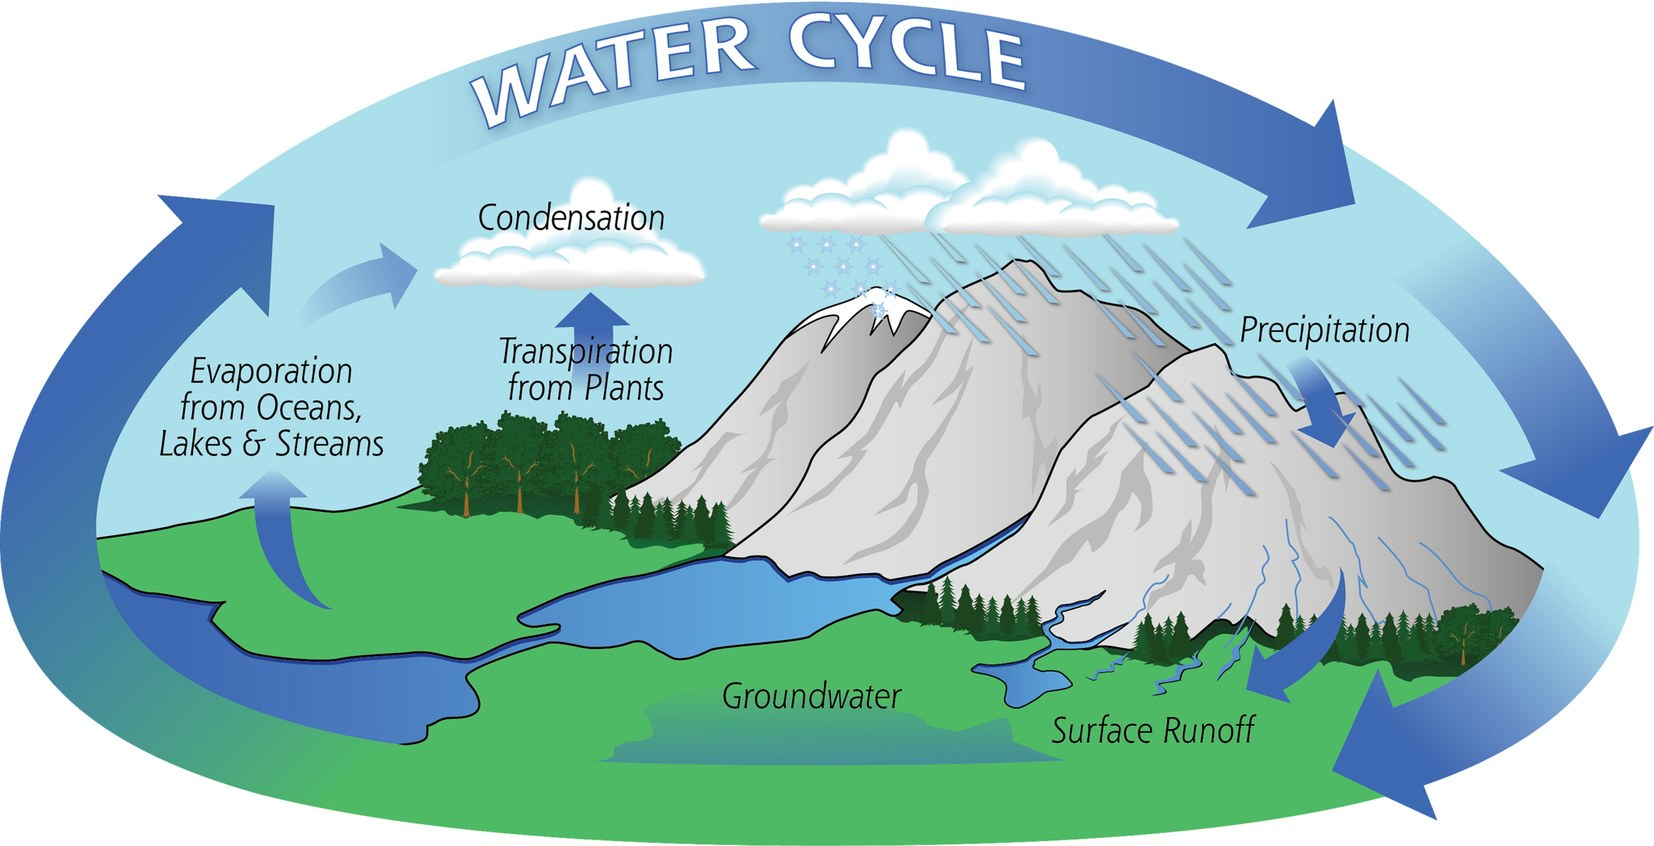 The water cycle . Evaporation clipart ocean lake stream